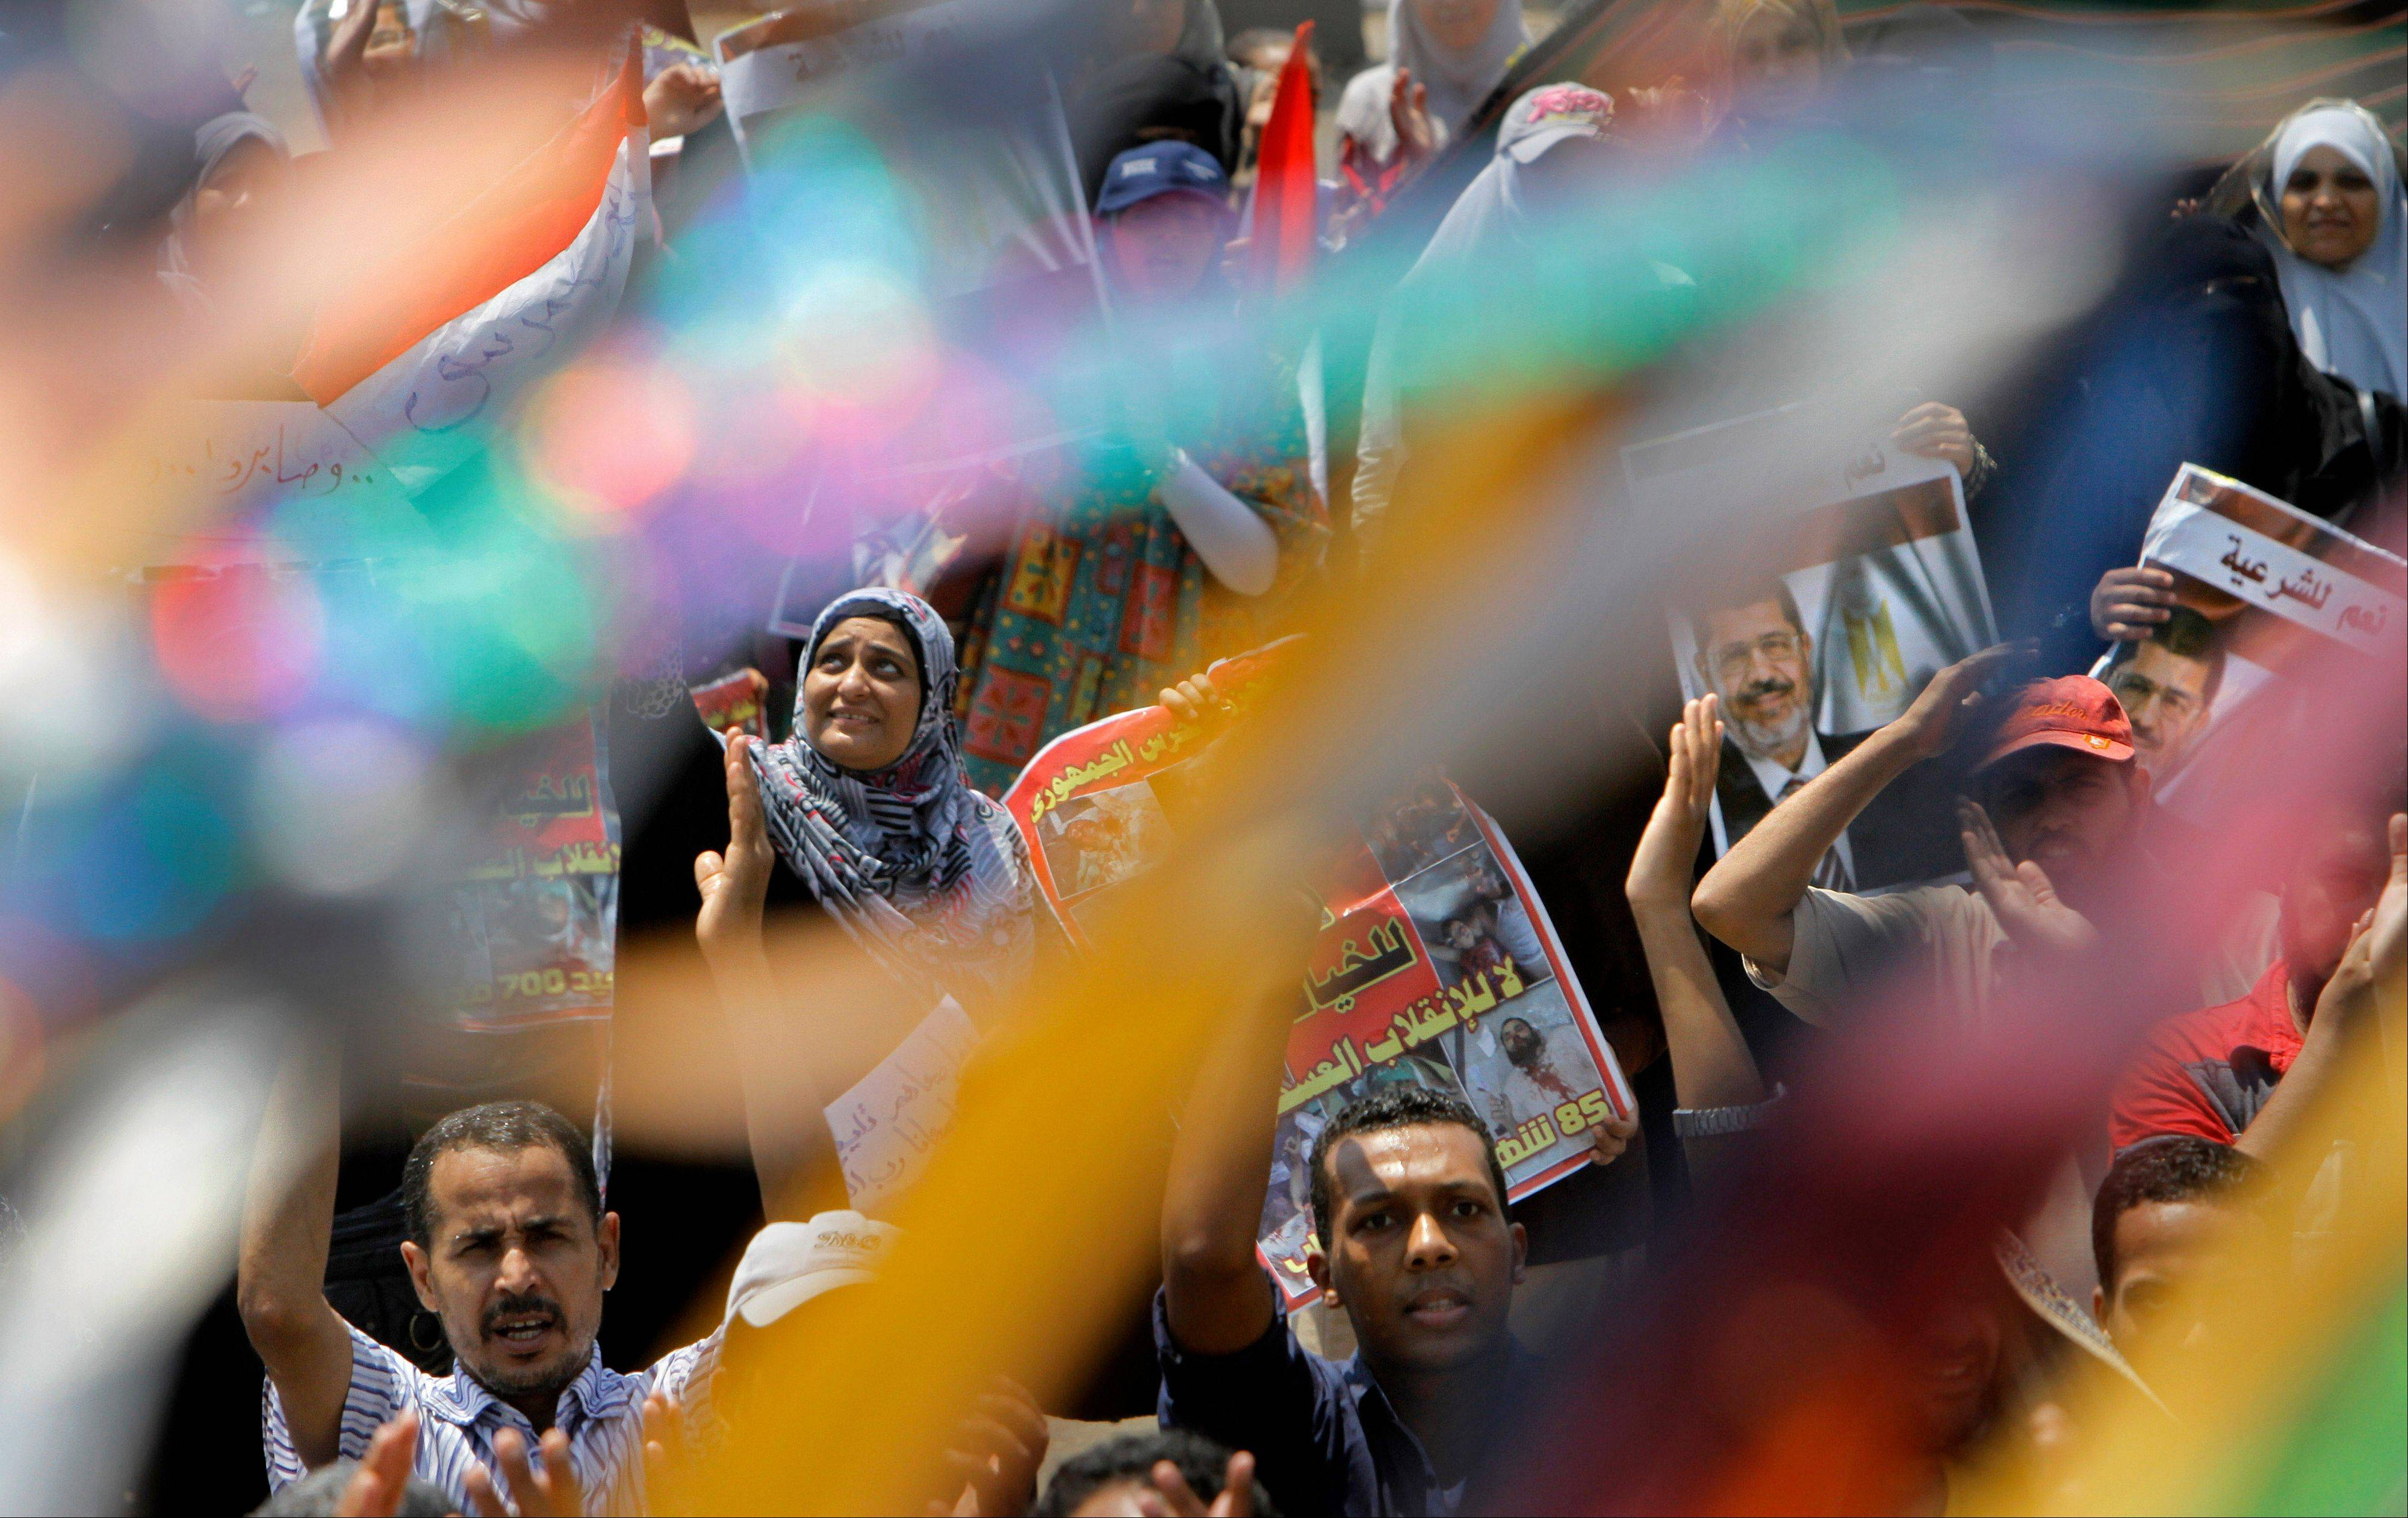 Supporters of Egypt's ousted President Mohammed Morsi hold his posters seen through decorations that mark the Islamic month of Ramadan during a rally near Cairo University, where protesters have installed their camp in Giza, southwest of Cairo, Egypt, Friday, July 12, 2013.